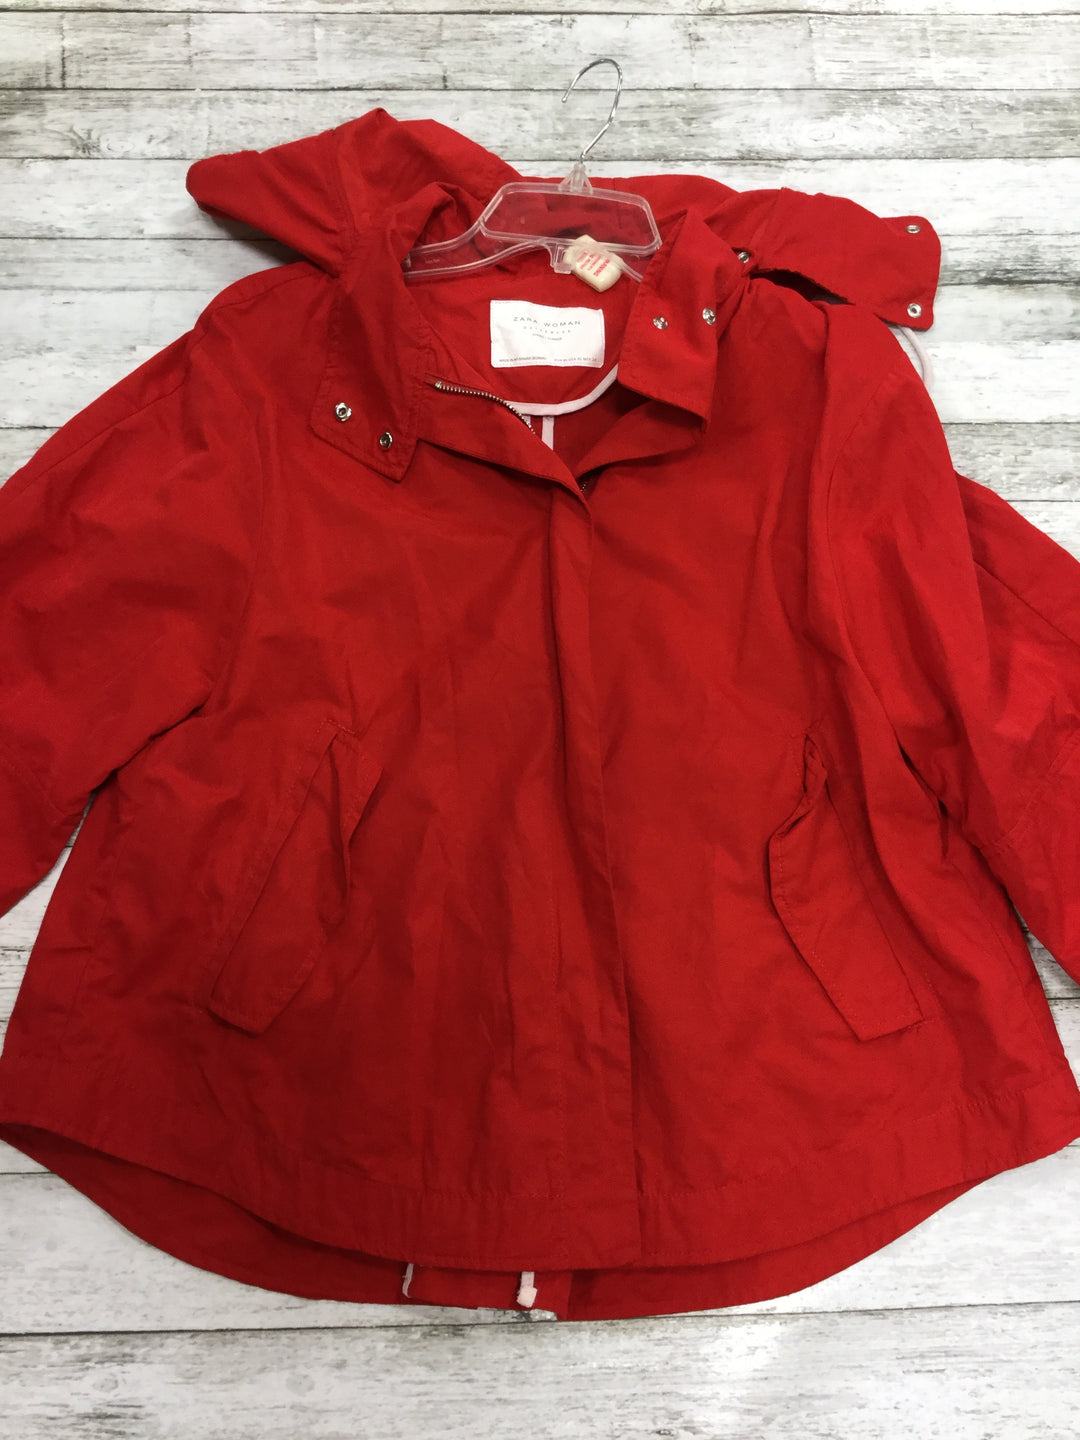 Primary Photo - BRAND: ZARA WOMEN , STYLE: JACKET OUTDOOR , COLOR: RED , SIZE: XS , SKU: 127-2767-82989